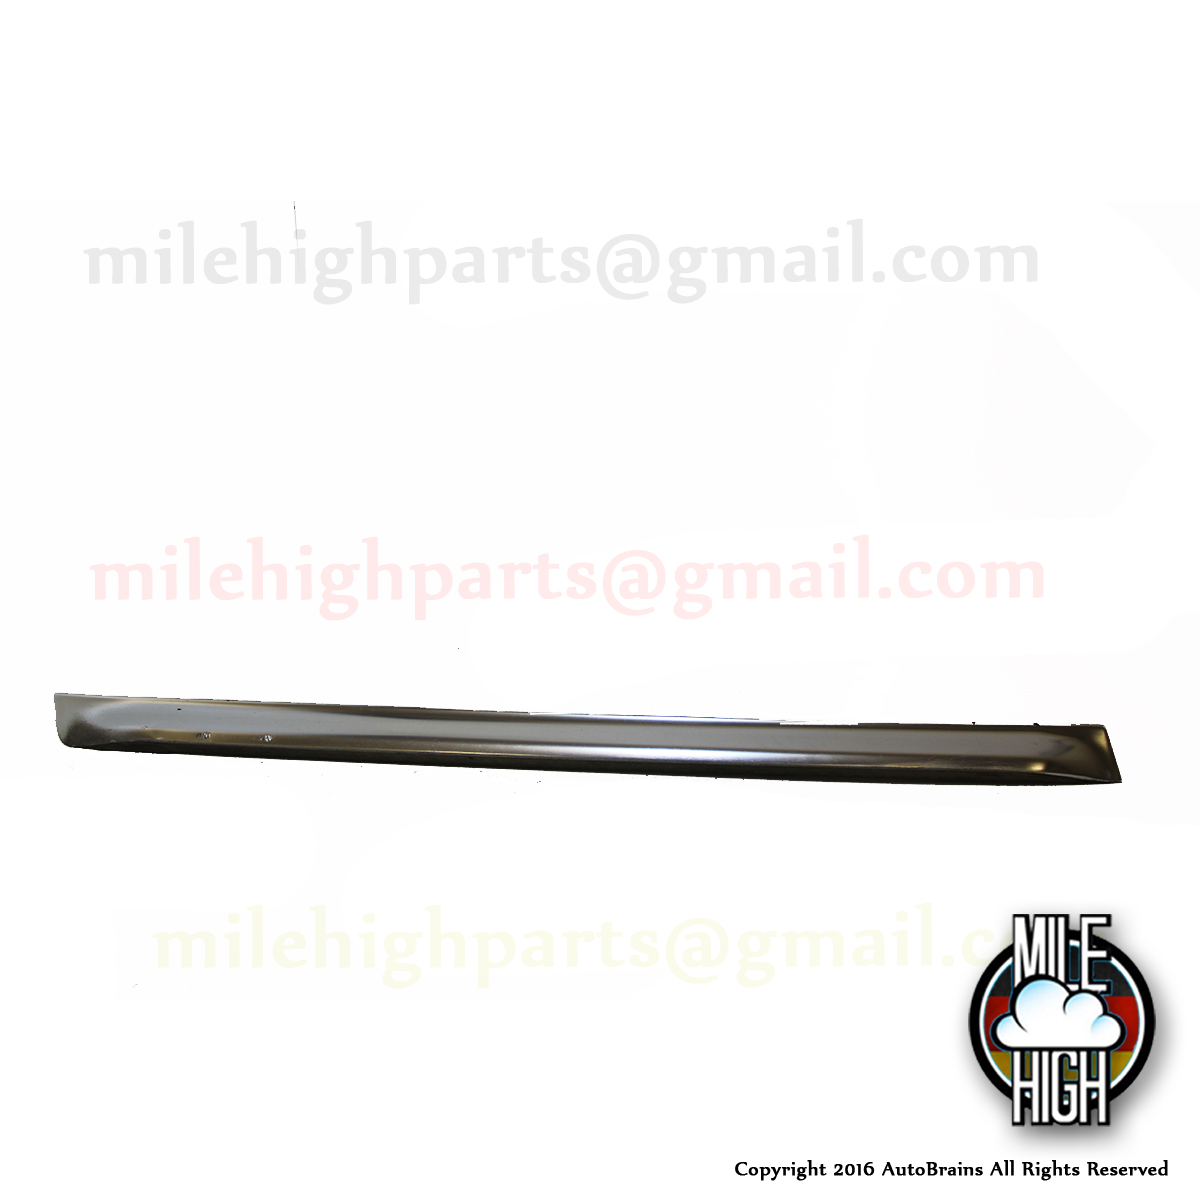 00 04 Audi Allroad Lower Door Trim Blade Panel Lh Driver Front Oem C5 Mile High Parts Used